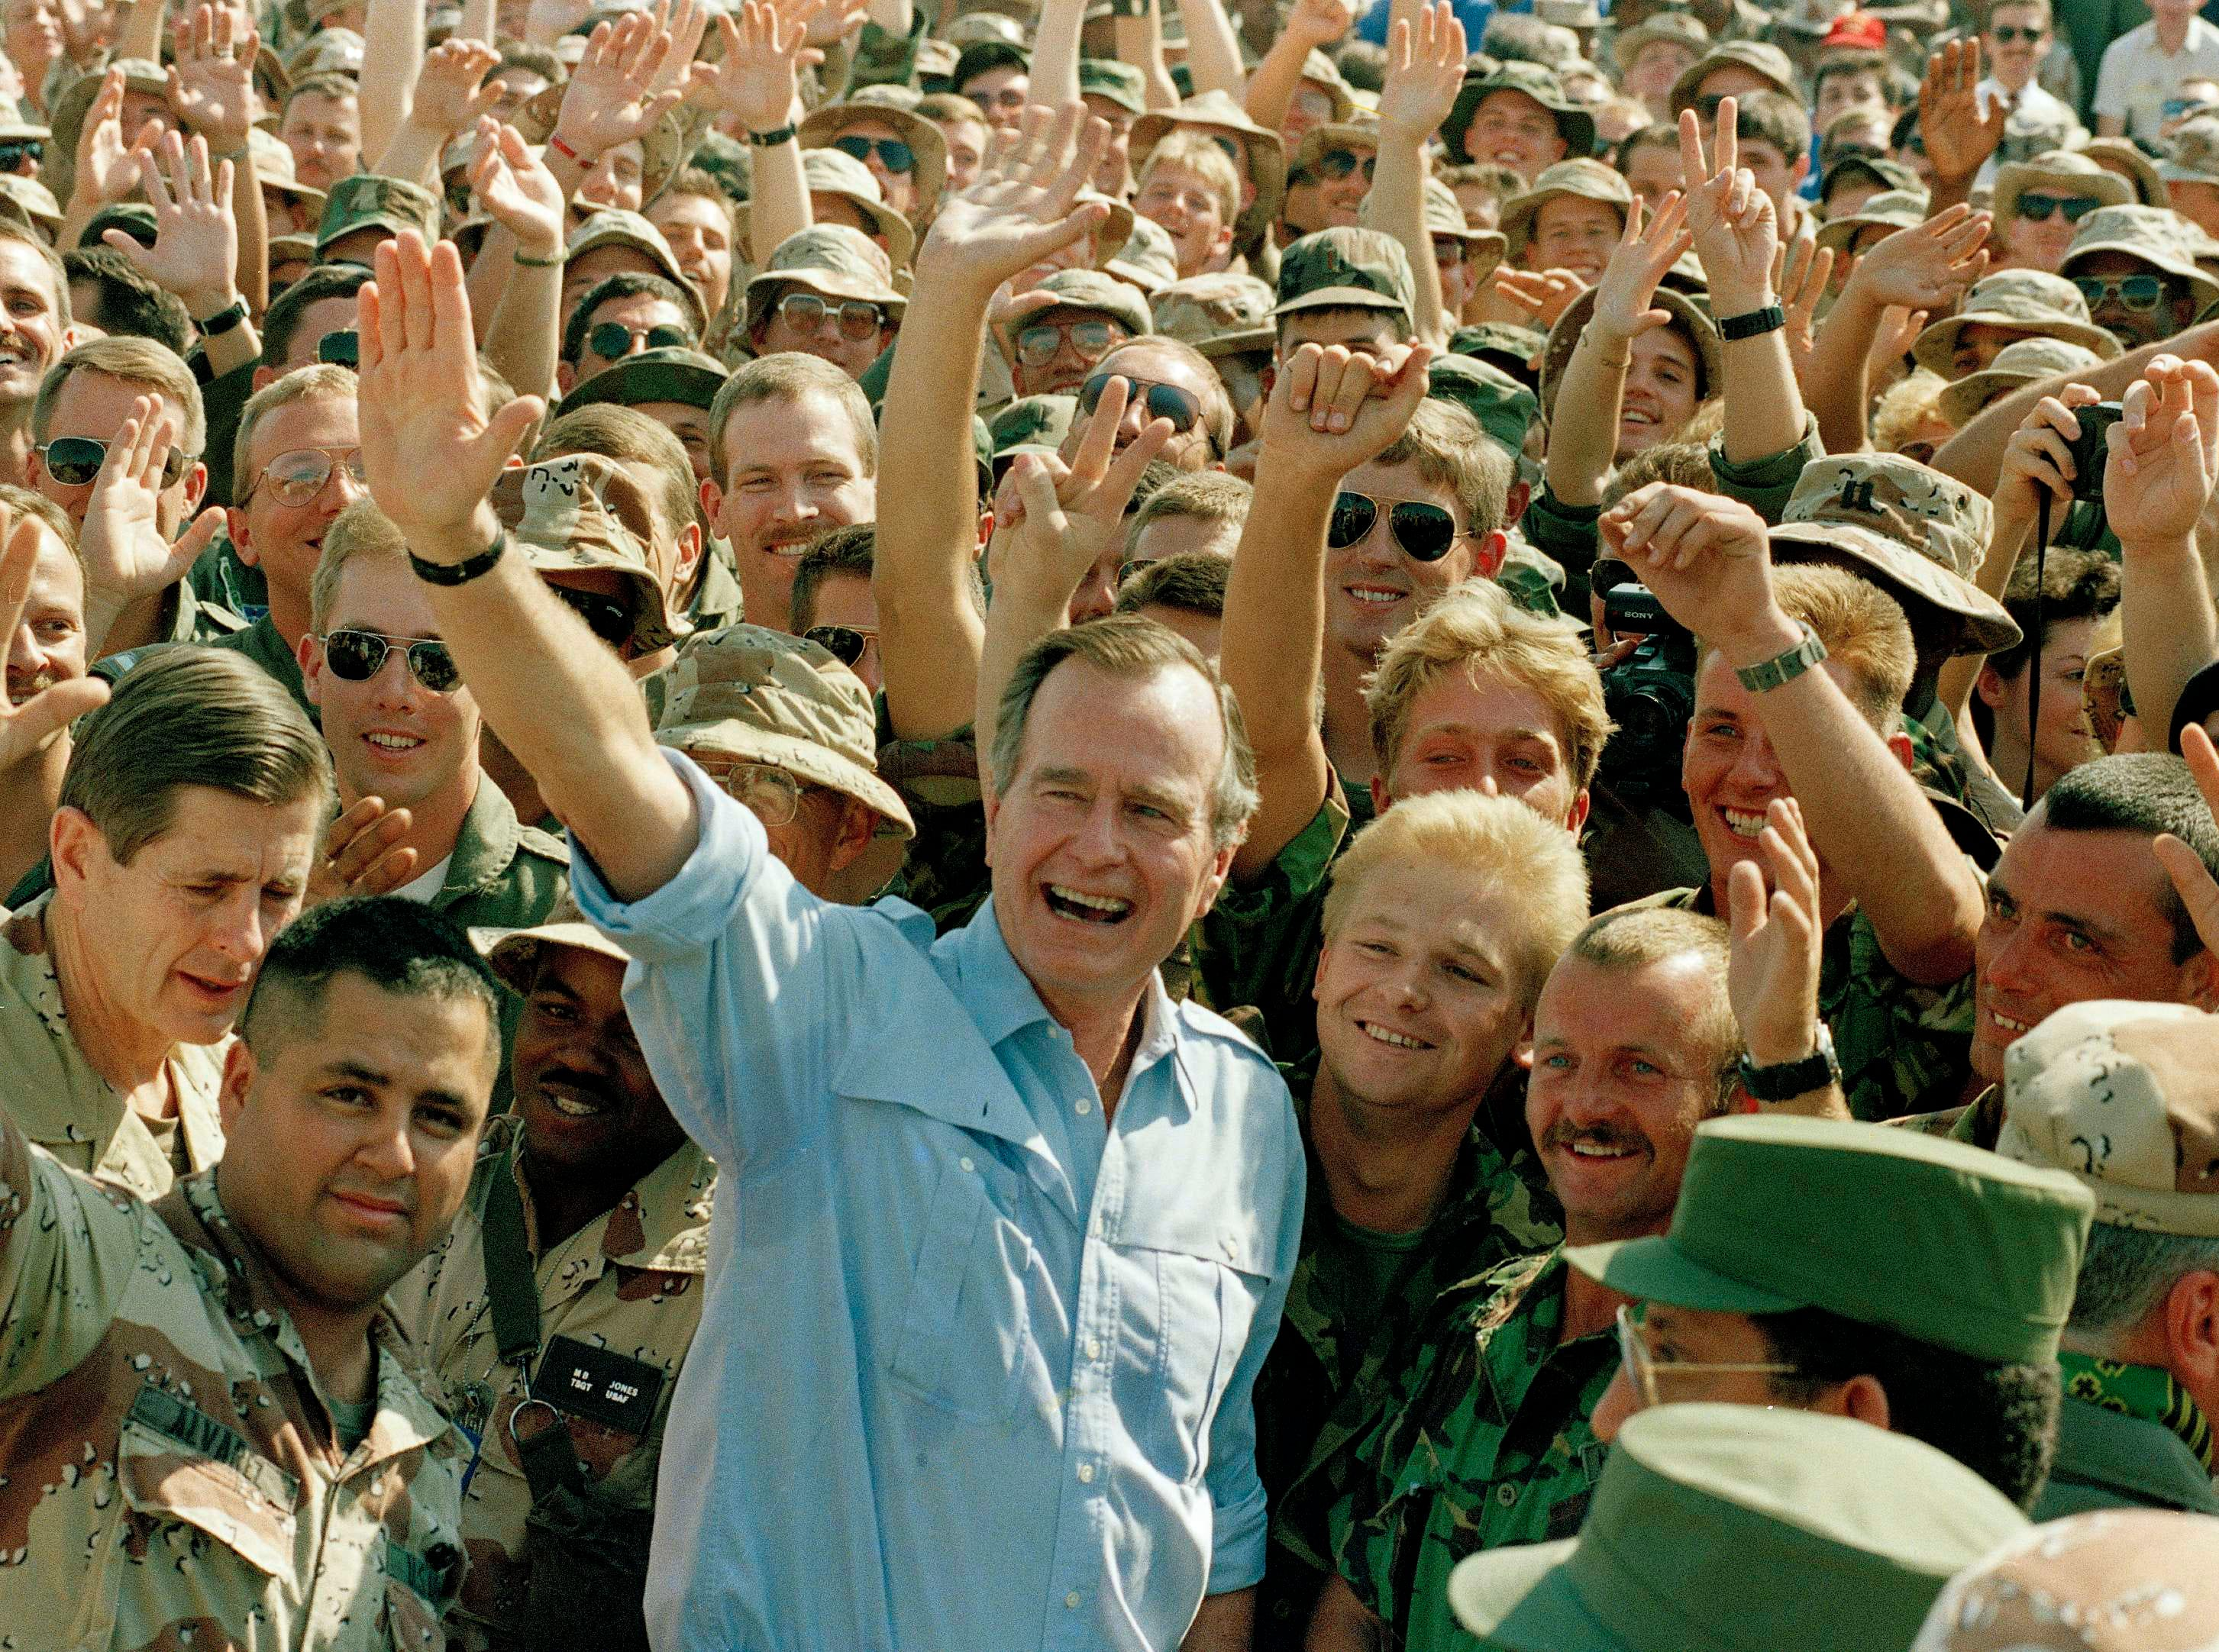 President George Bush poses with soldiers during a stop at an air base in Dhahran, Saudi Arabia, Nov. 22, 1990. (AP Photo/J. Scott Applewhite)